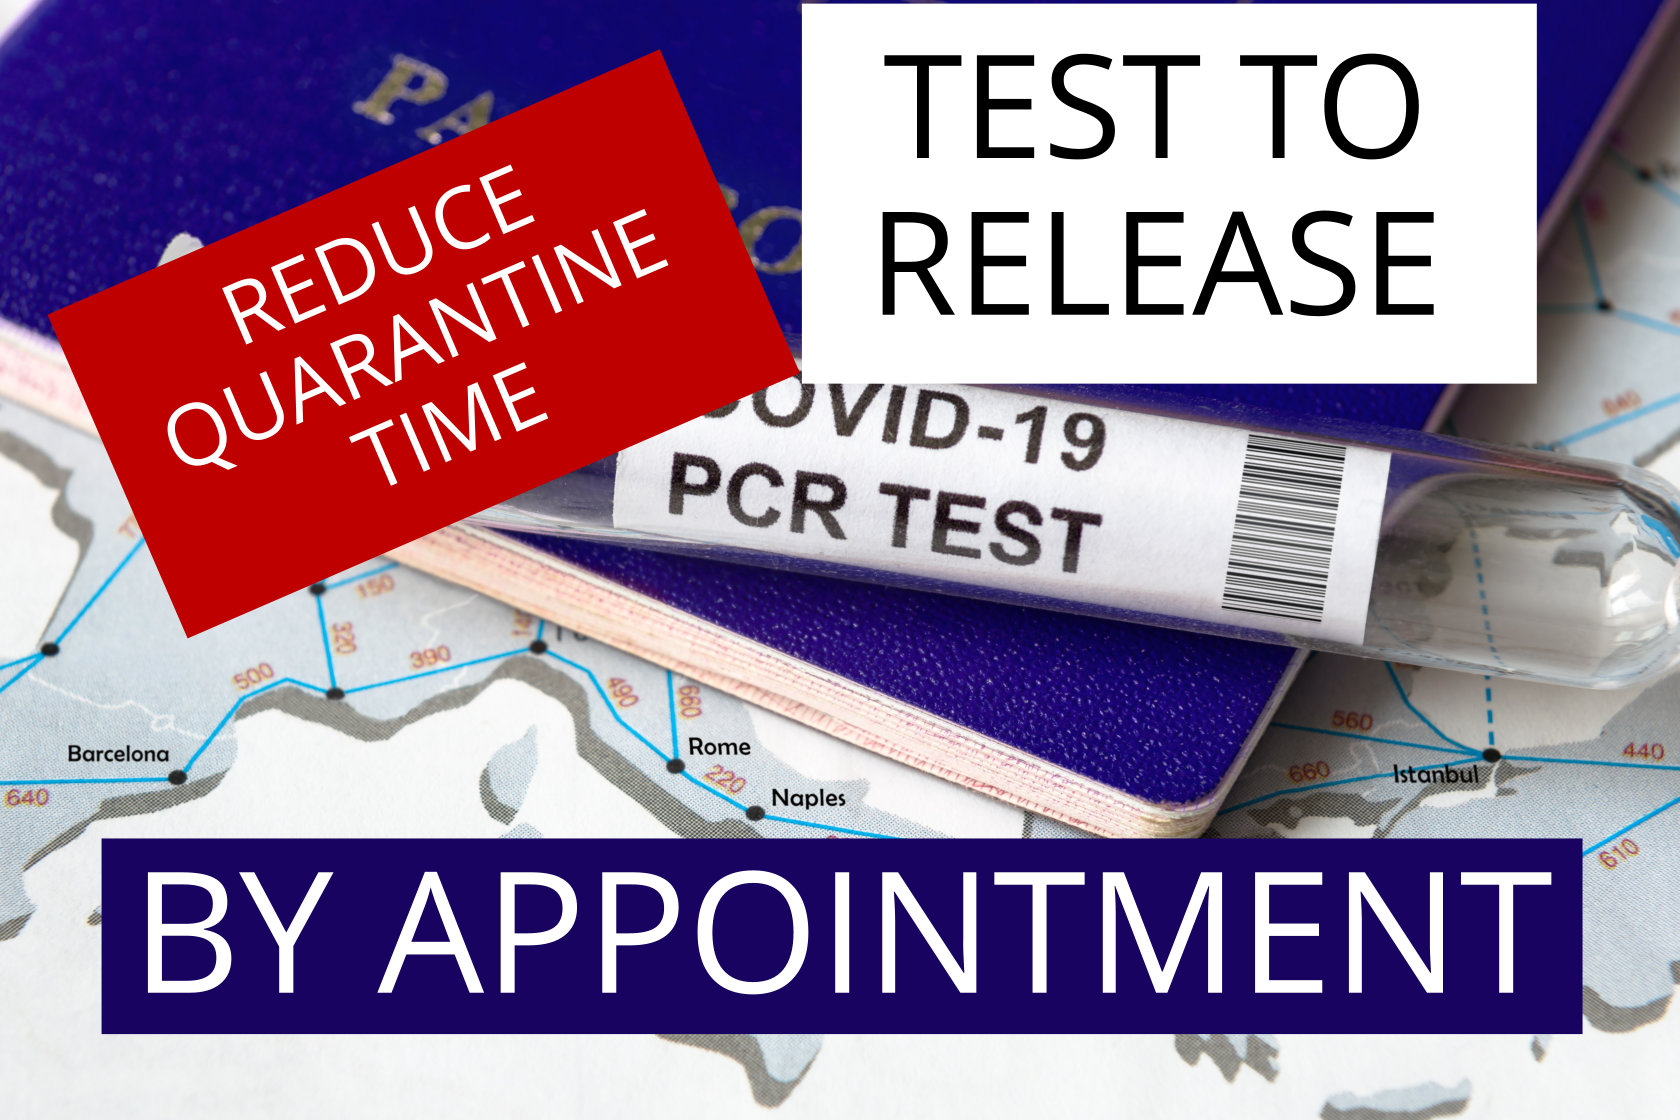 COVID-19 Test to Release - Reduce your travel self-isolation period